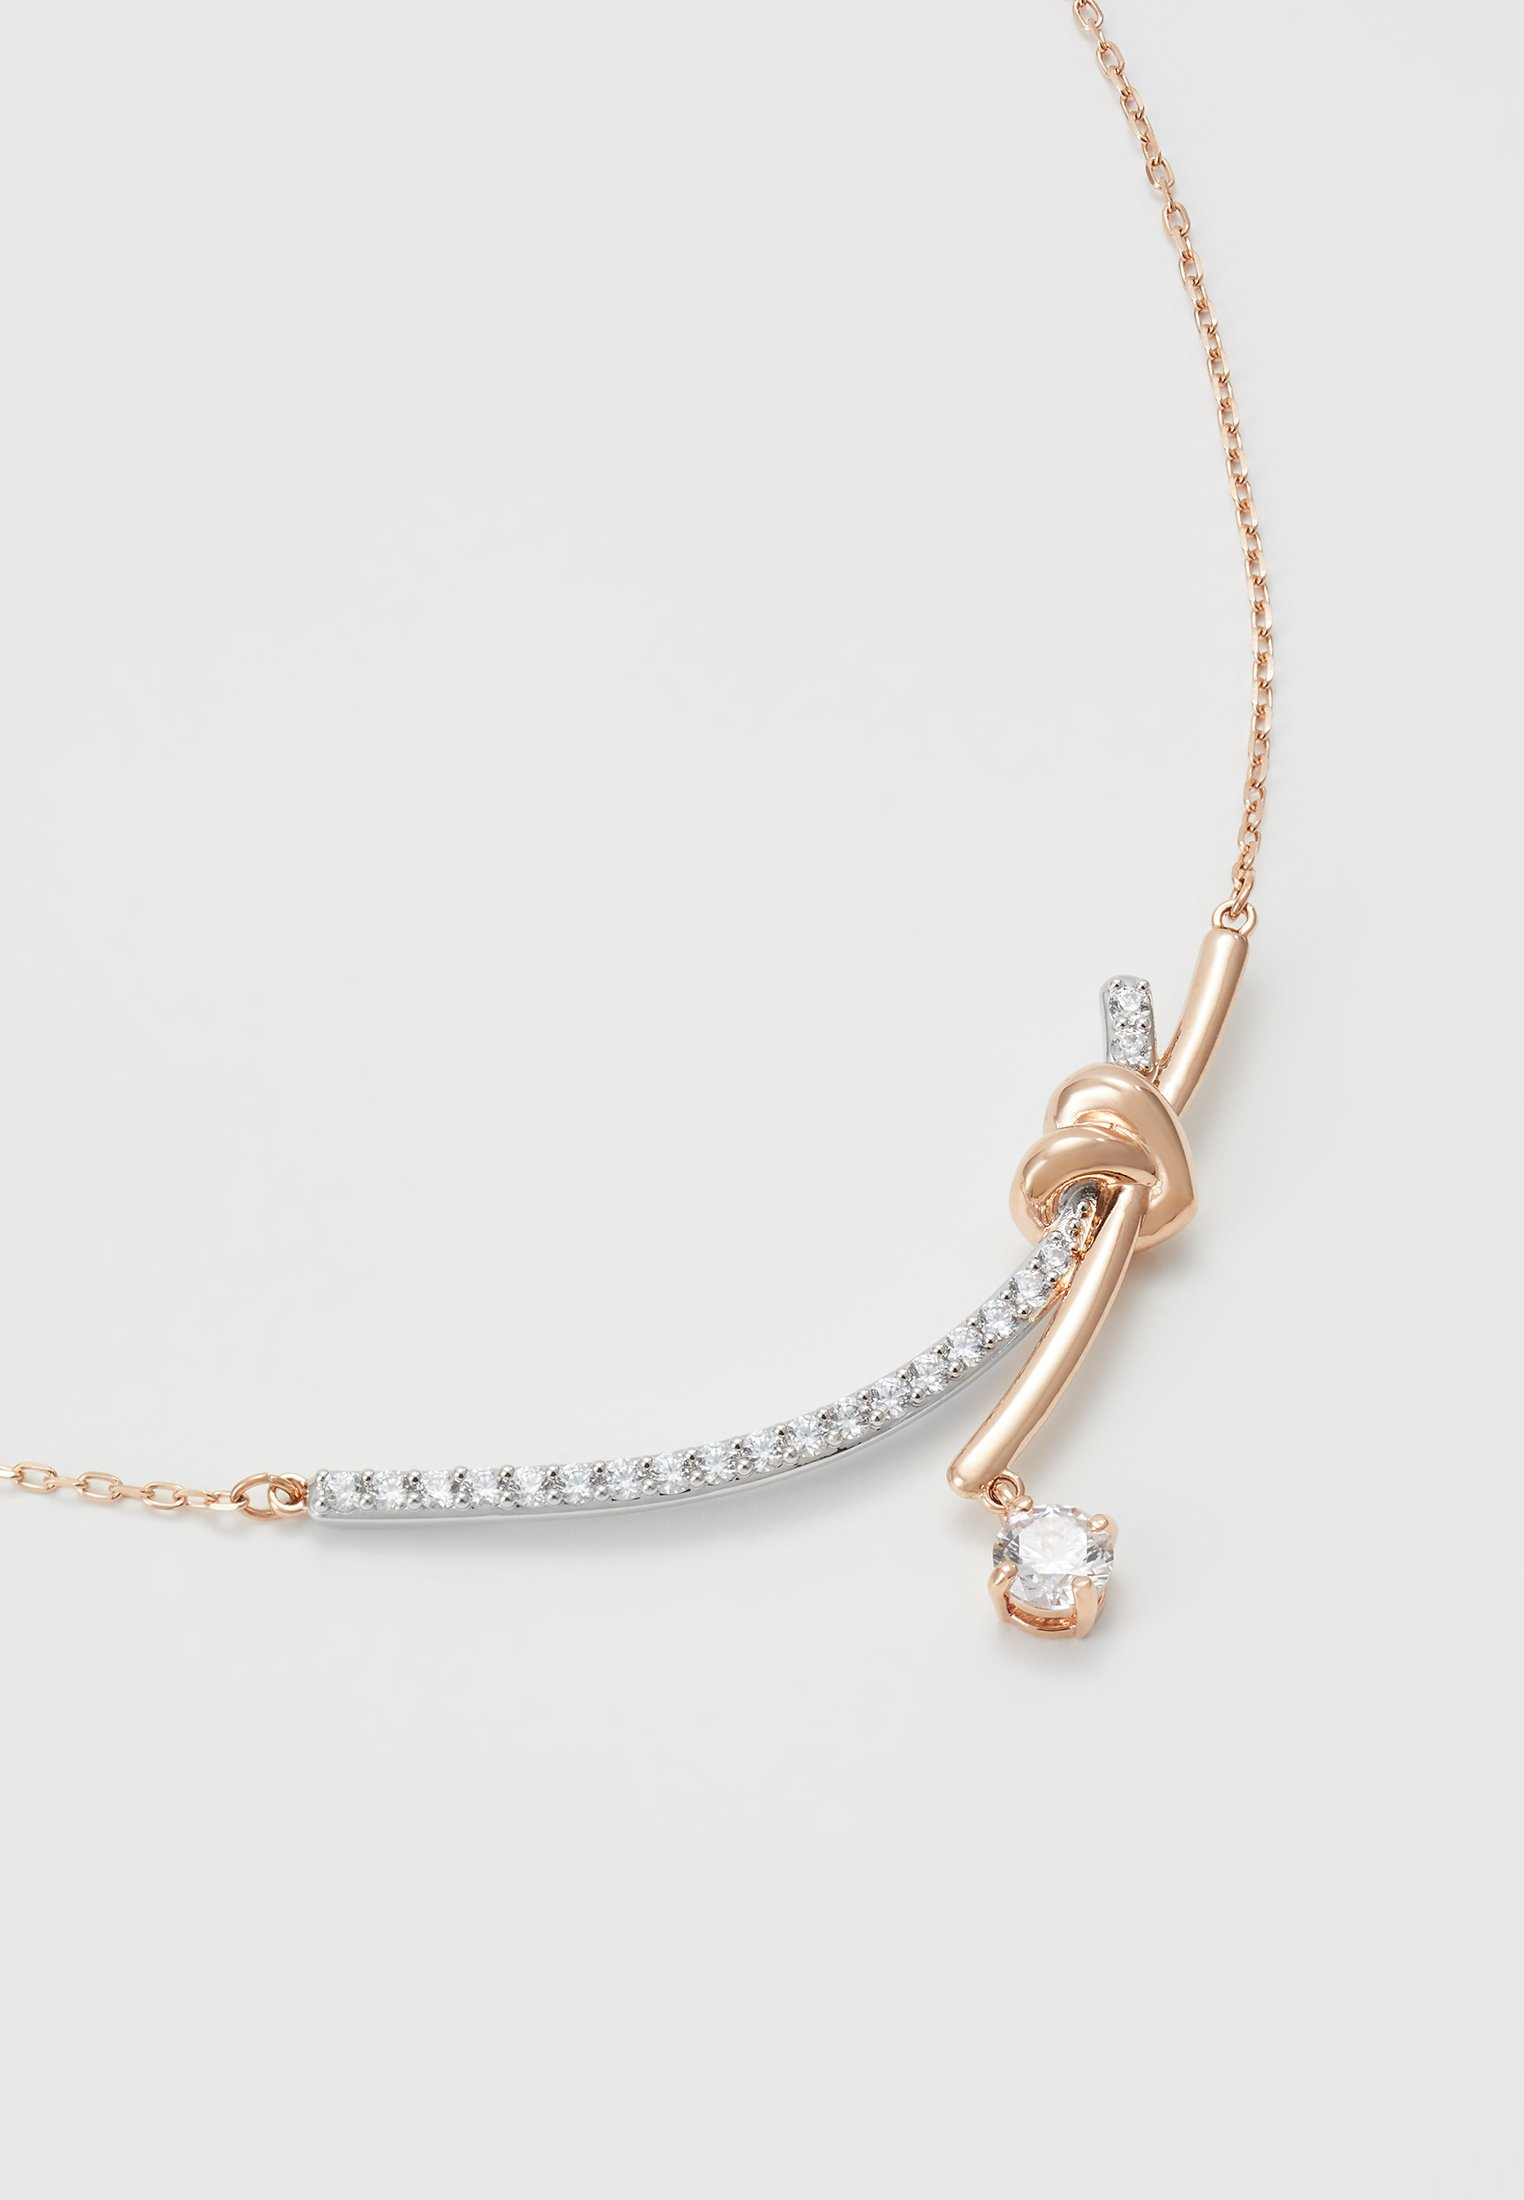 Swarovski Lifelong Necklace Barre - Halskette Rose Gold-coloured/roségoldfarben